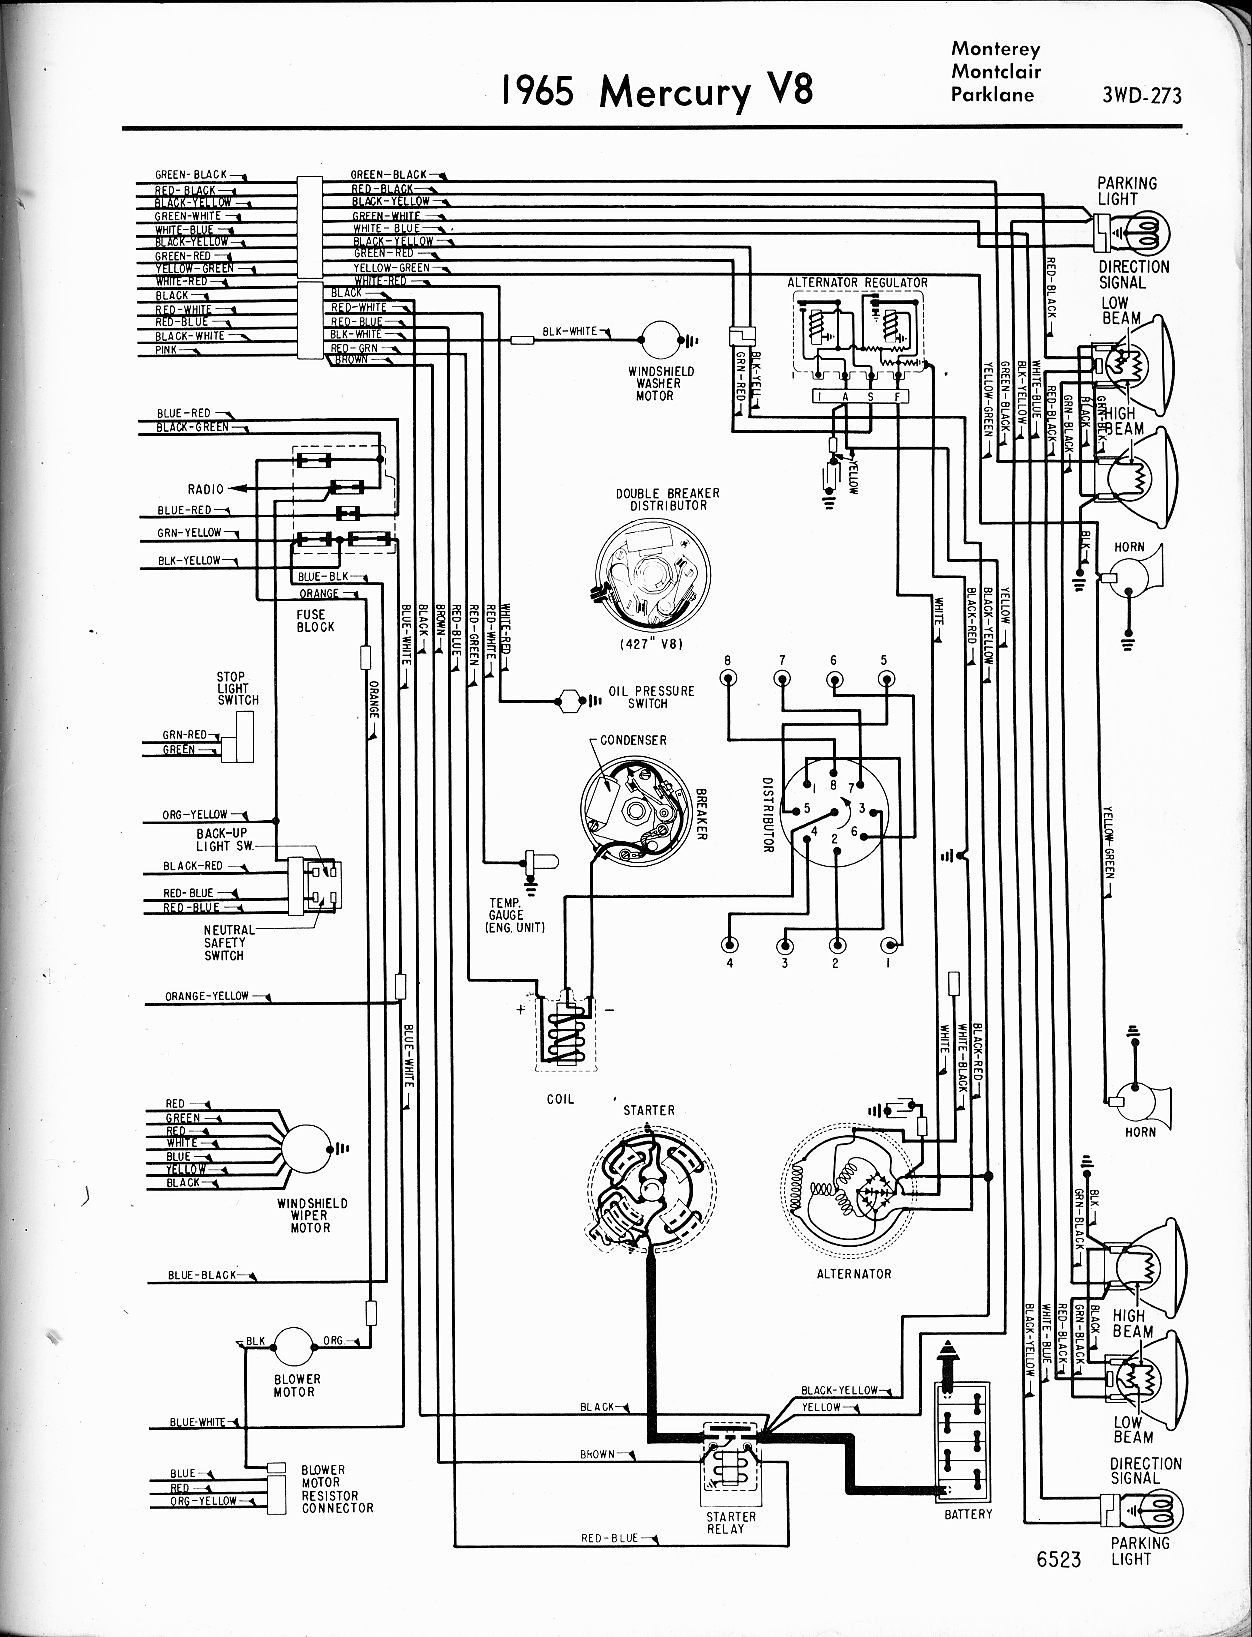 1968 Plymouth Barracuda Wiring Diagram Wiring Diagram